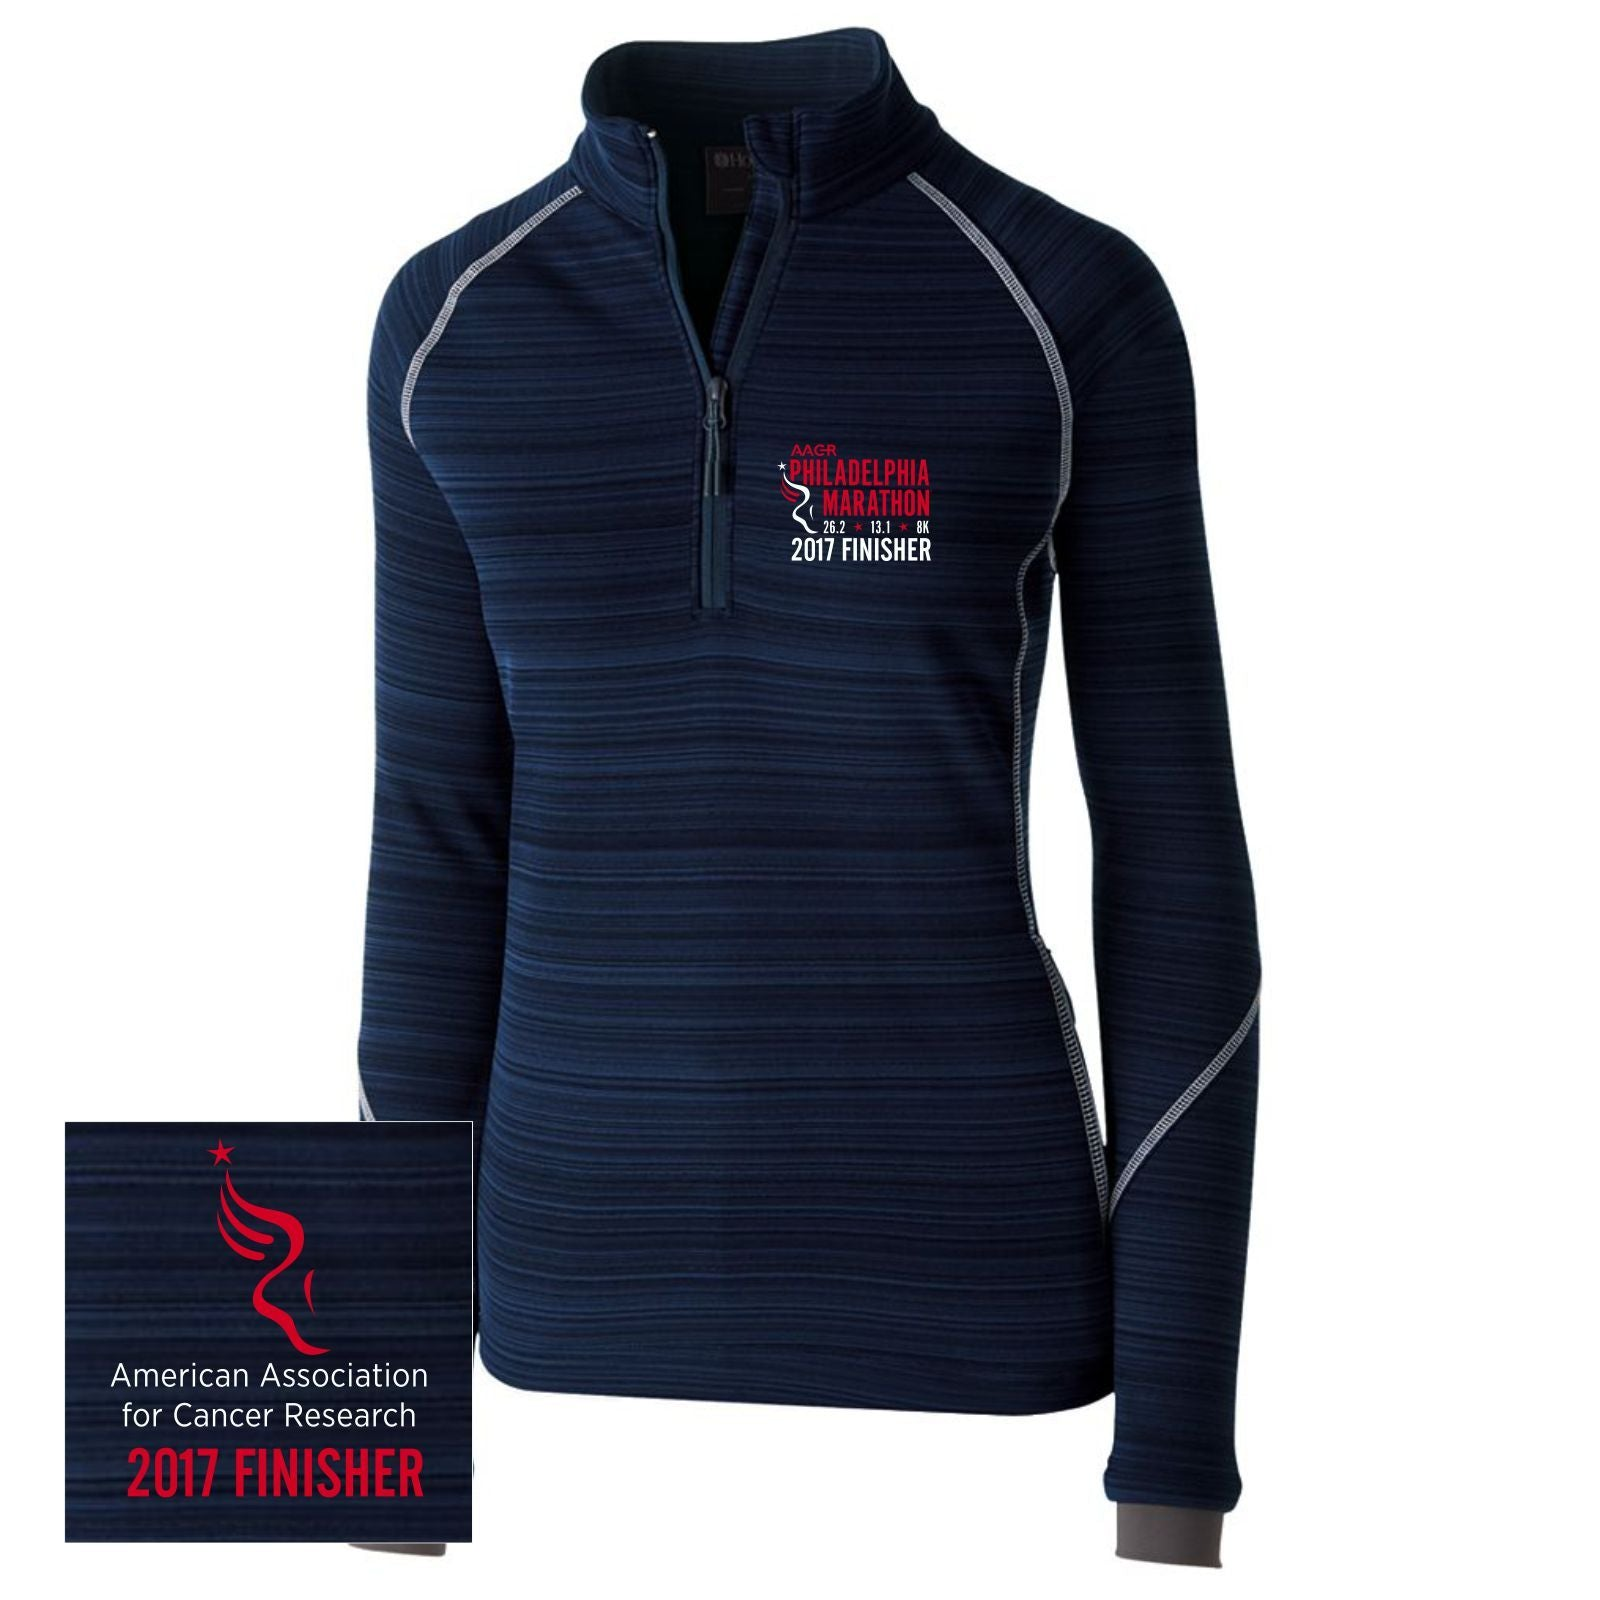 AACR Philadelphia Marathon: '2017 Emb. Finisher 26.2' Women's 'Deviate' Pullover Tech 1/2 Zip - Navy - by Holloway